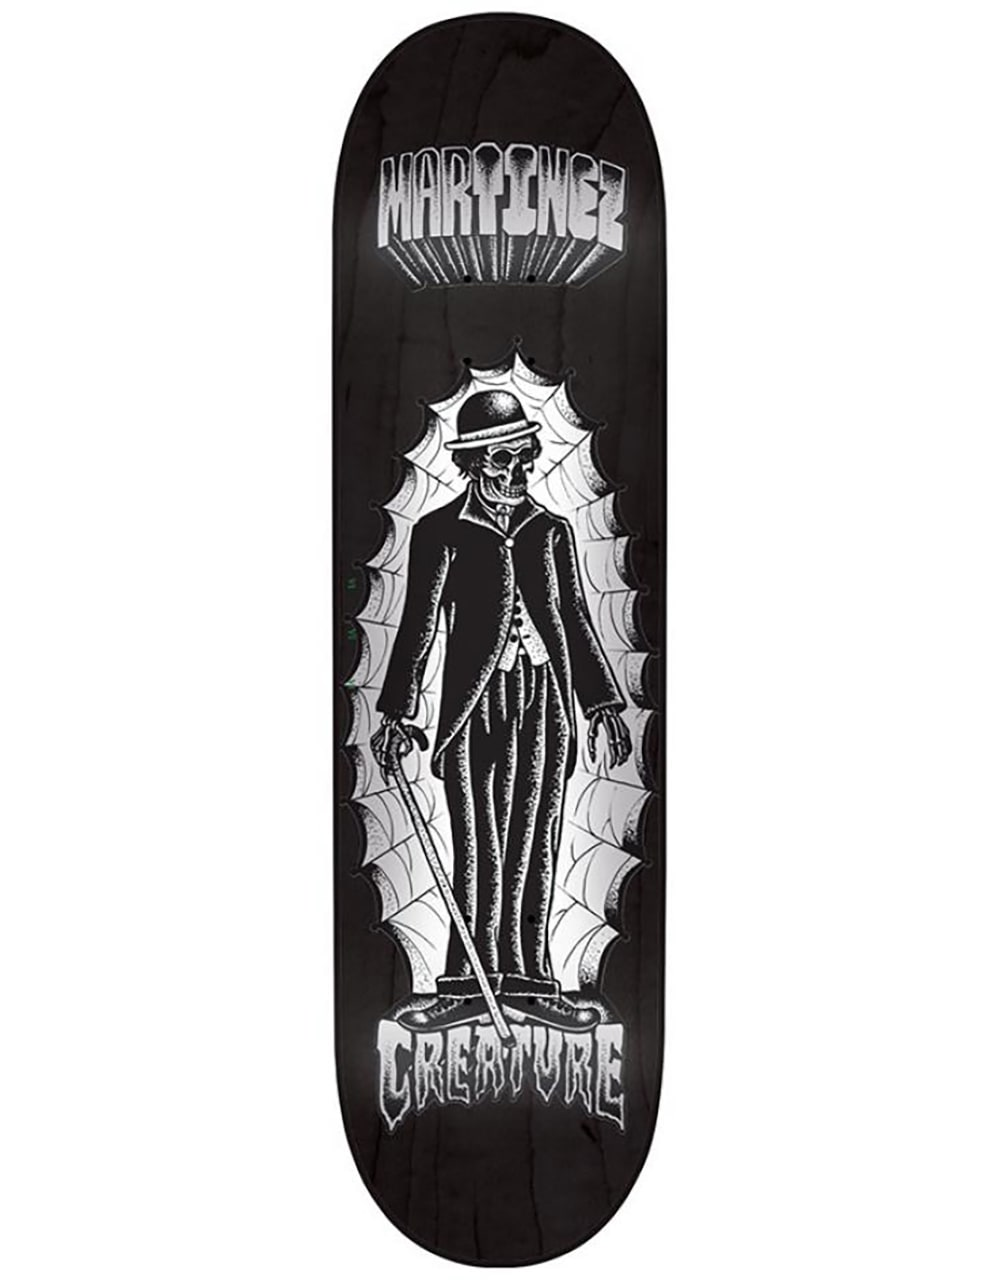 Creature martinez the immigrant ii skateboard deck jpg 1000x1280 Shoes hesh  skater dad hat 4233fff693f2